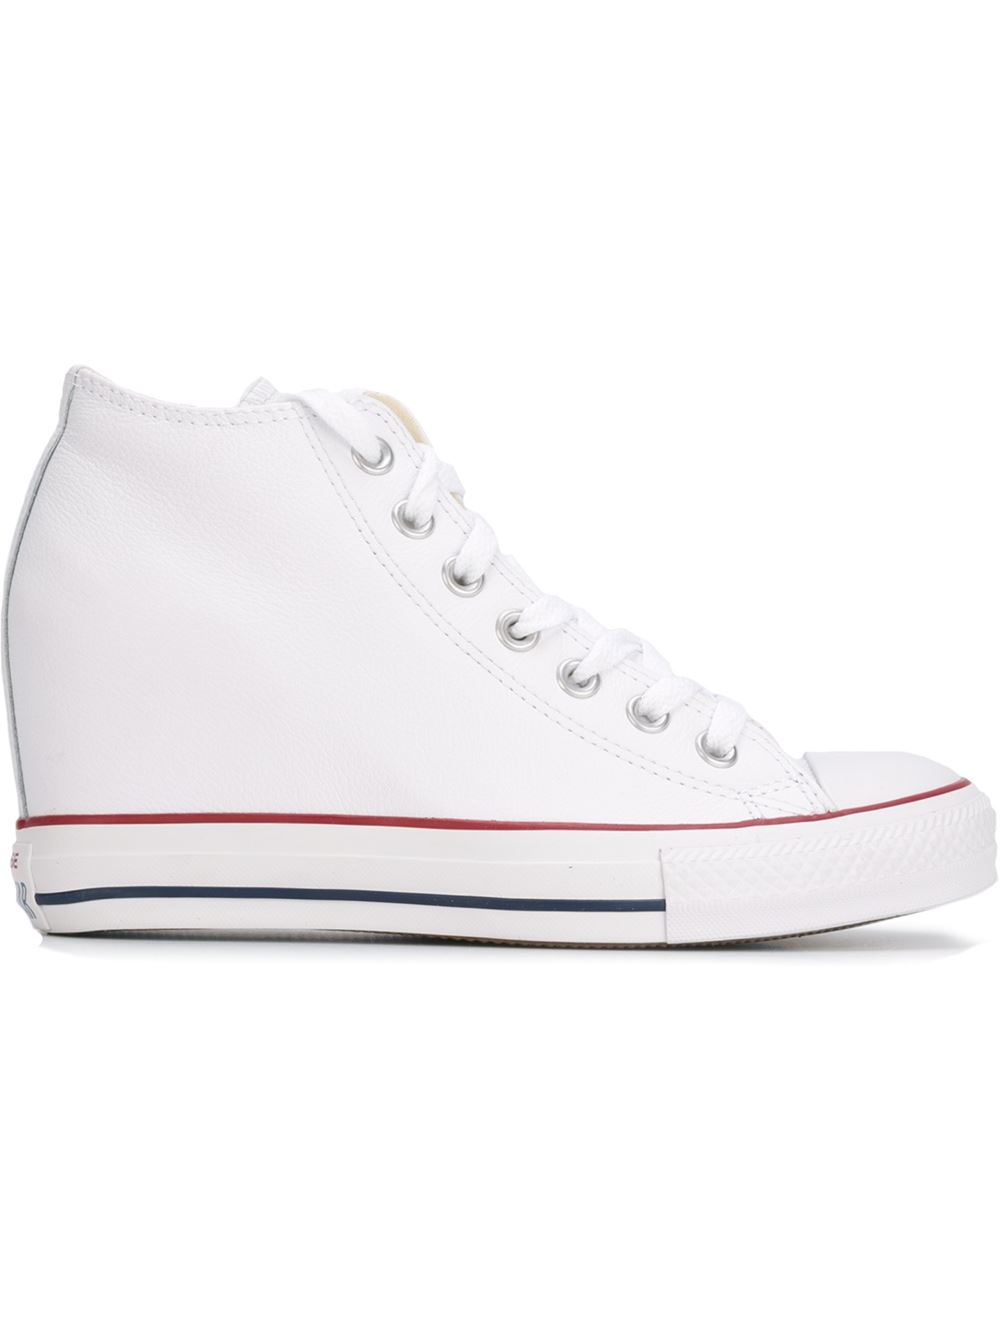 c880818a23a Gallery. Previously sold at  Farfetch · Women s Wedge Sneakers Women s  Converse Chuck Taylor ...